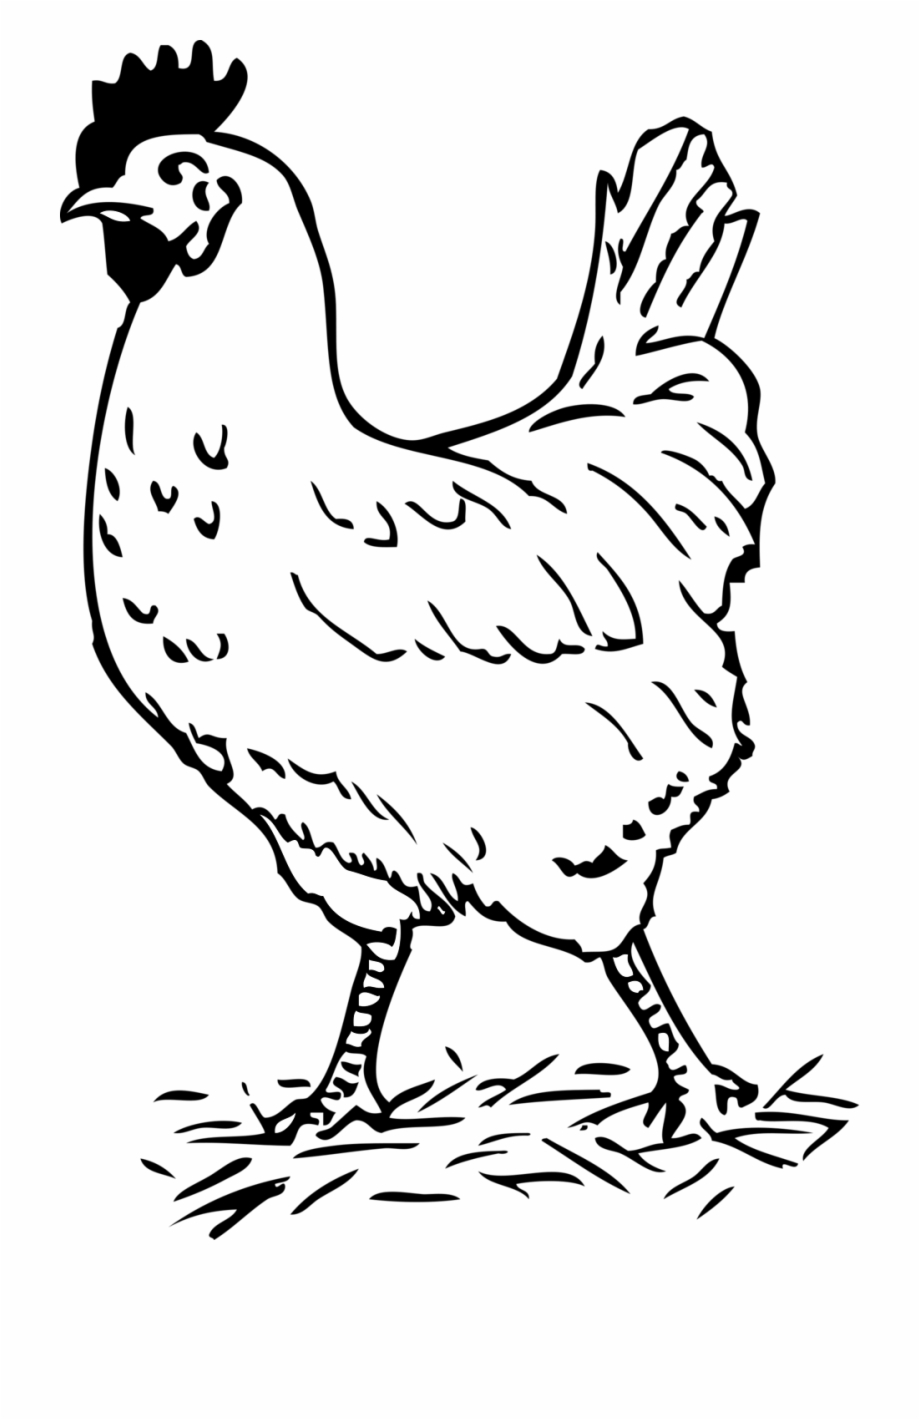 picture of chicken a history of chickens then 1900 vs now 2016 chicken of picture